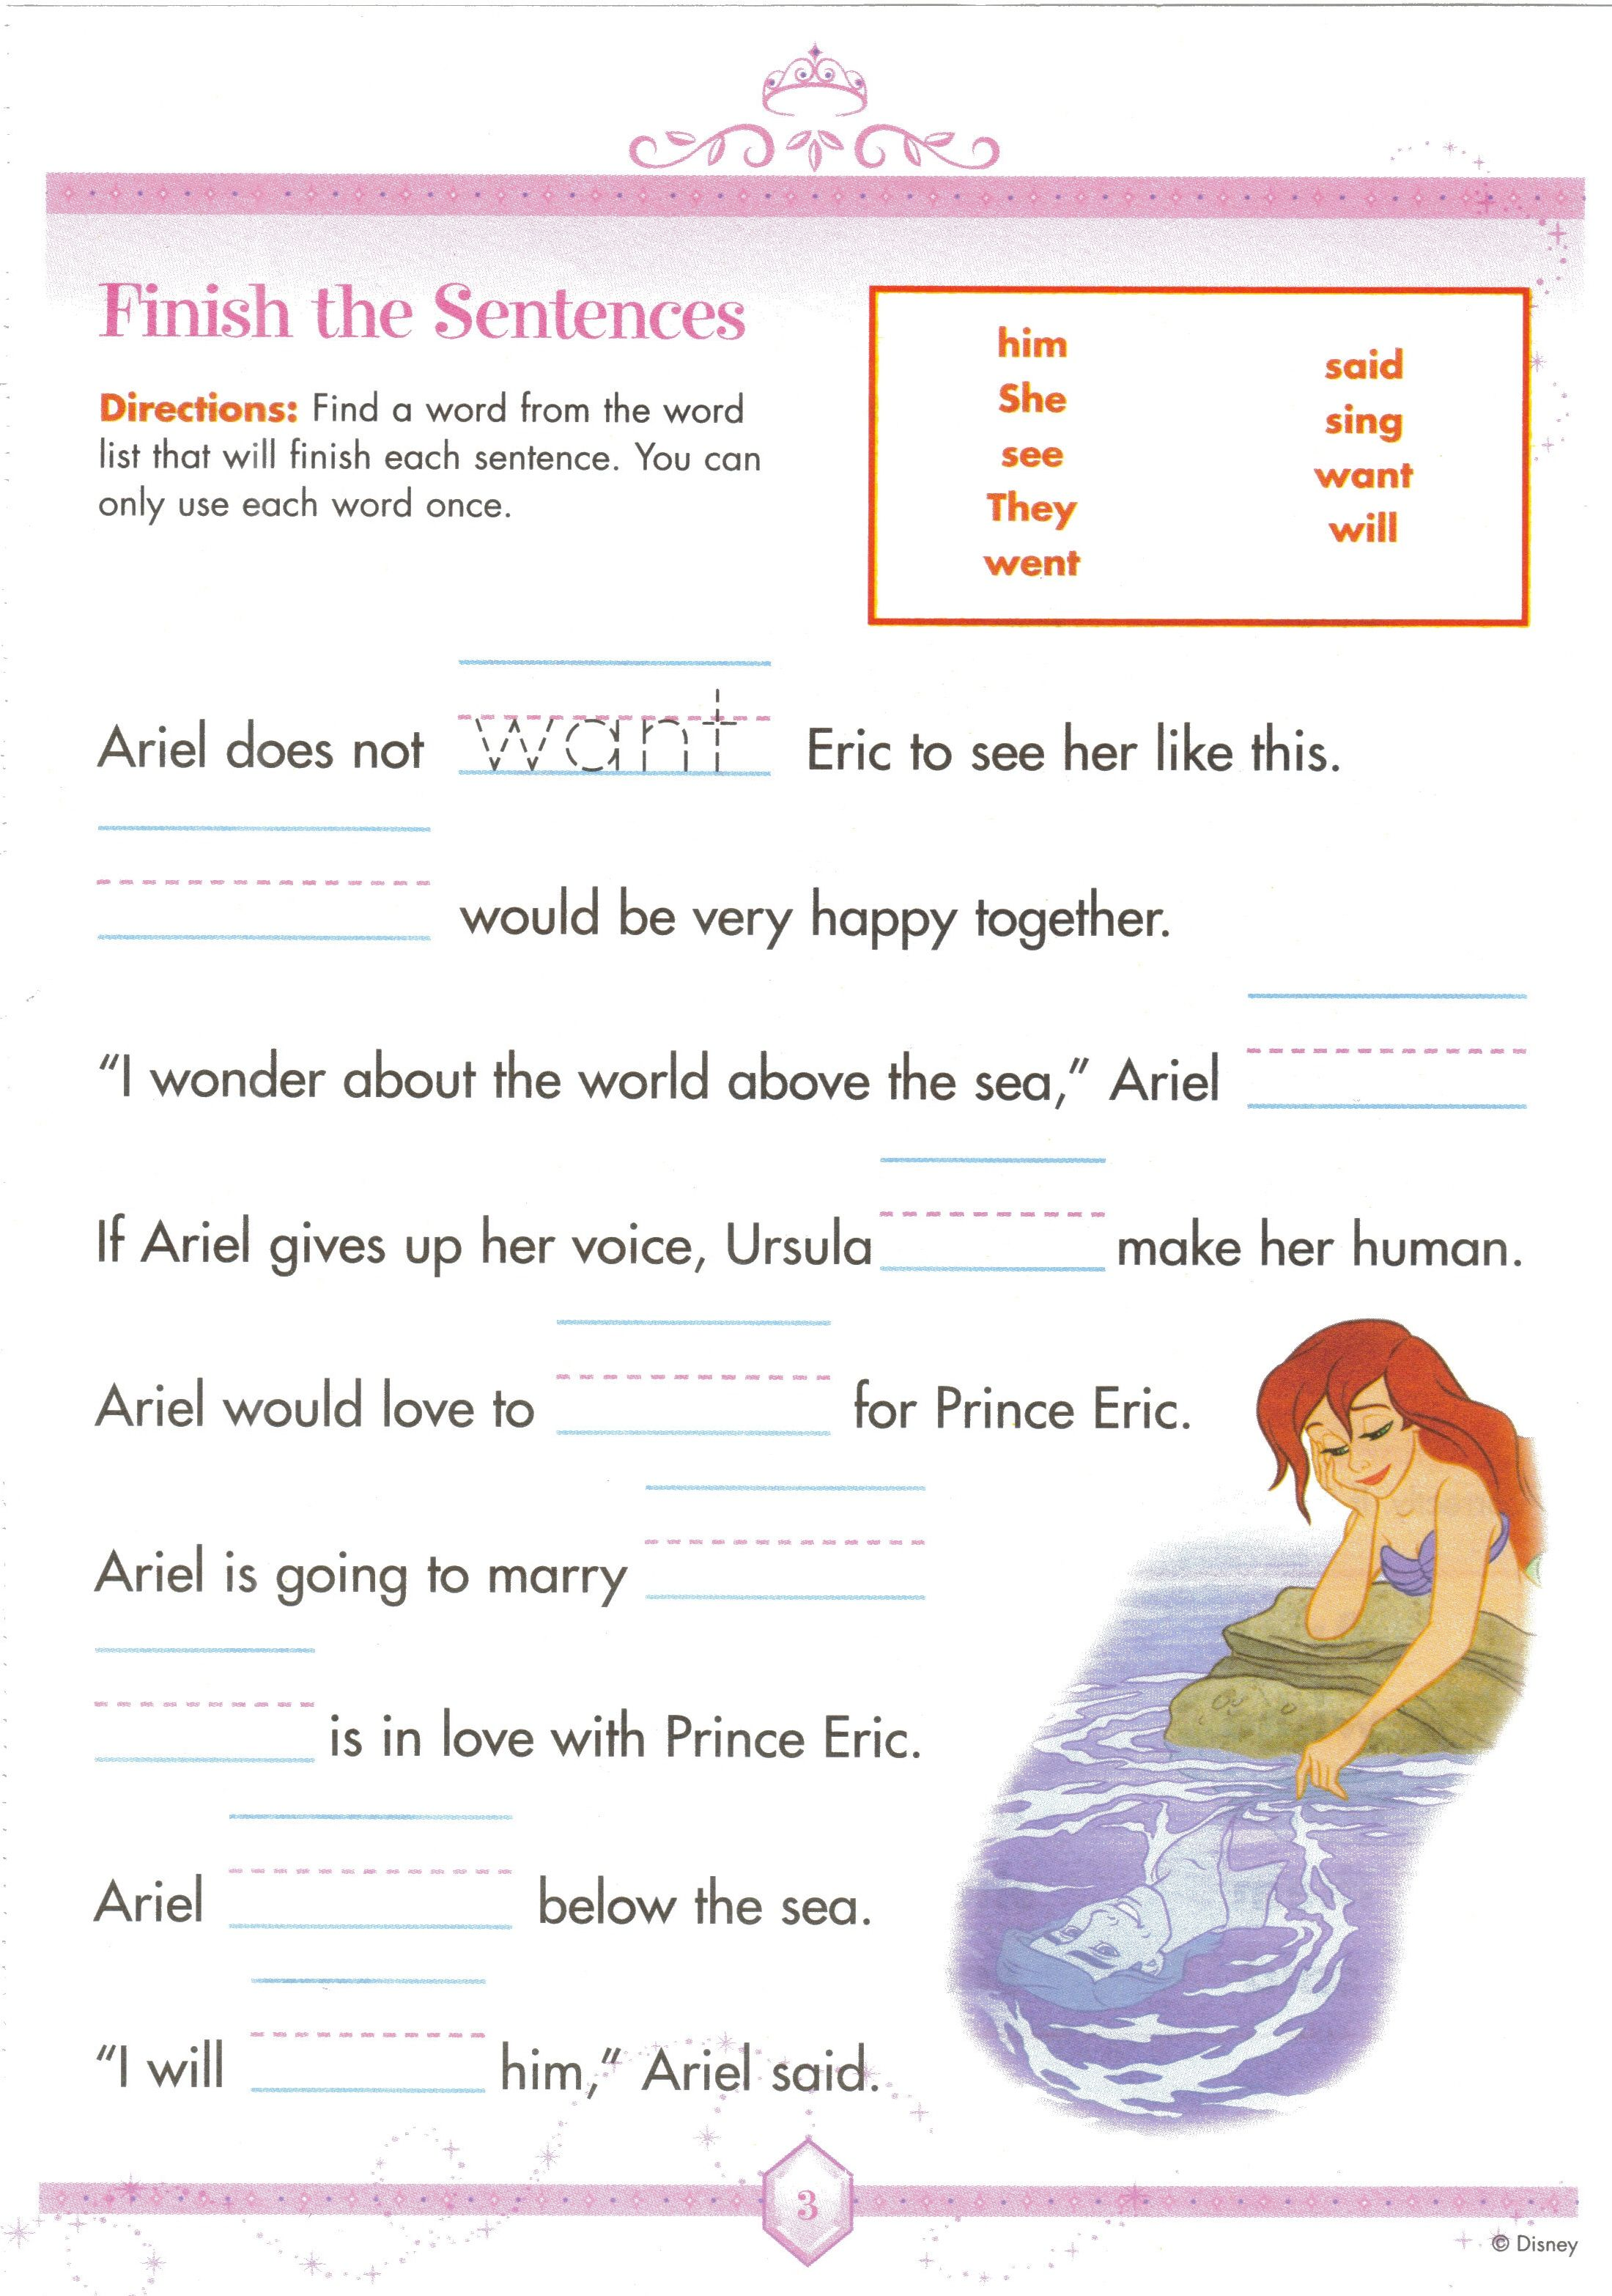 Weirdmailus  Outstanding  Images About Worksheets On Pinterest  Fun Facts For Kids  With Likable  Images About Worksheets On Pinterest  Fun Facts For Kids Earth Day Worksheets And Jungles With Nice Worksheets Of Pronouns Also Letters And Sounds Phase  Worksheets In Addition Word Scramble Worksheet Maker And Worksheets Math Nd Grade As Well As Th Worksheets Free Additionally Kindness Worksheets For Kids From Pinterestcom With Weirdmailus  Likable  Images About Worksheets On Pinterest  Fun Facts For Kids  With Nice  Images About Worksheets On Pinterest  Fun Facts For Kids Earth Day Worksheets And Jungles And Outstanding Worksheets Of Pronouns Also Letters And Sounds Phase  Worksheets In Addition Word Scramble Worksheet Maker From Pinterestcom